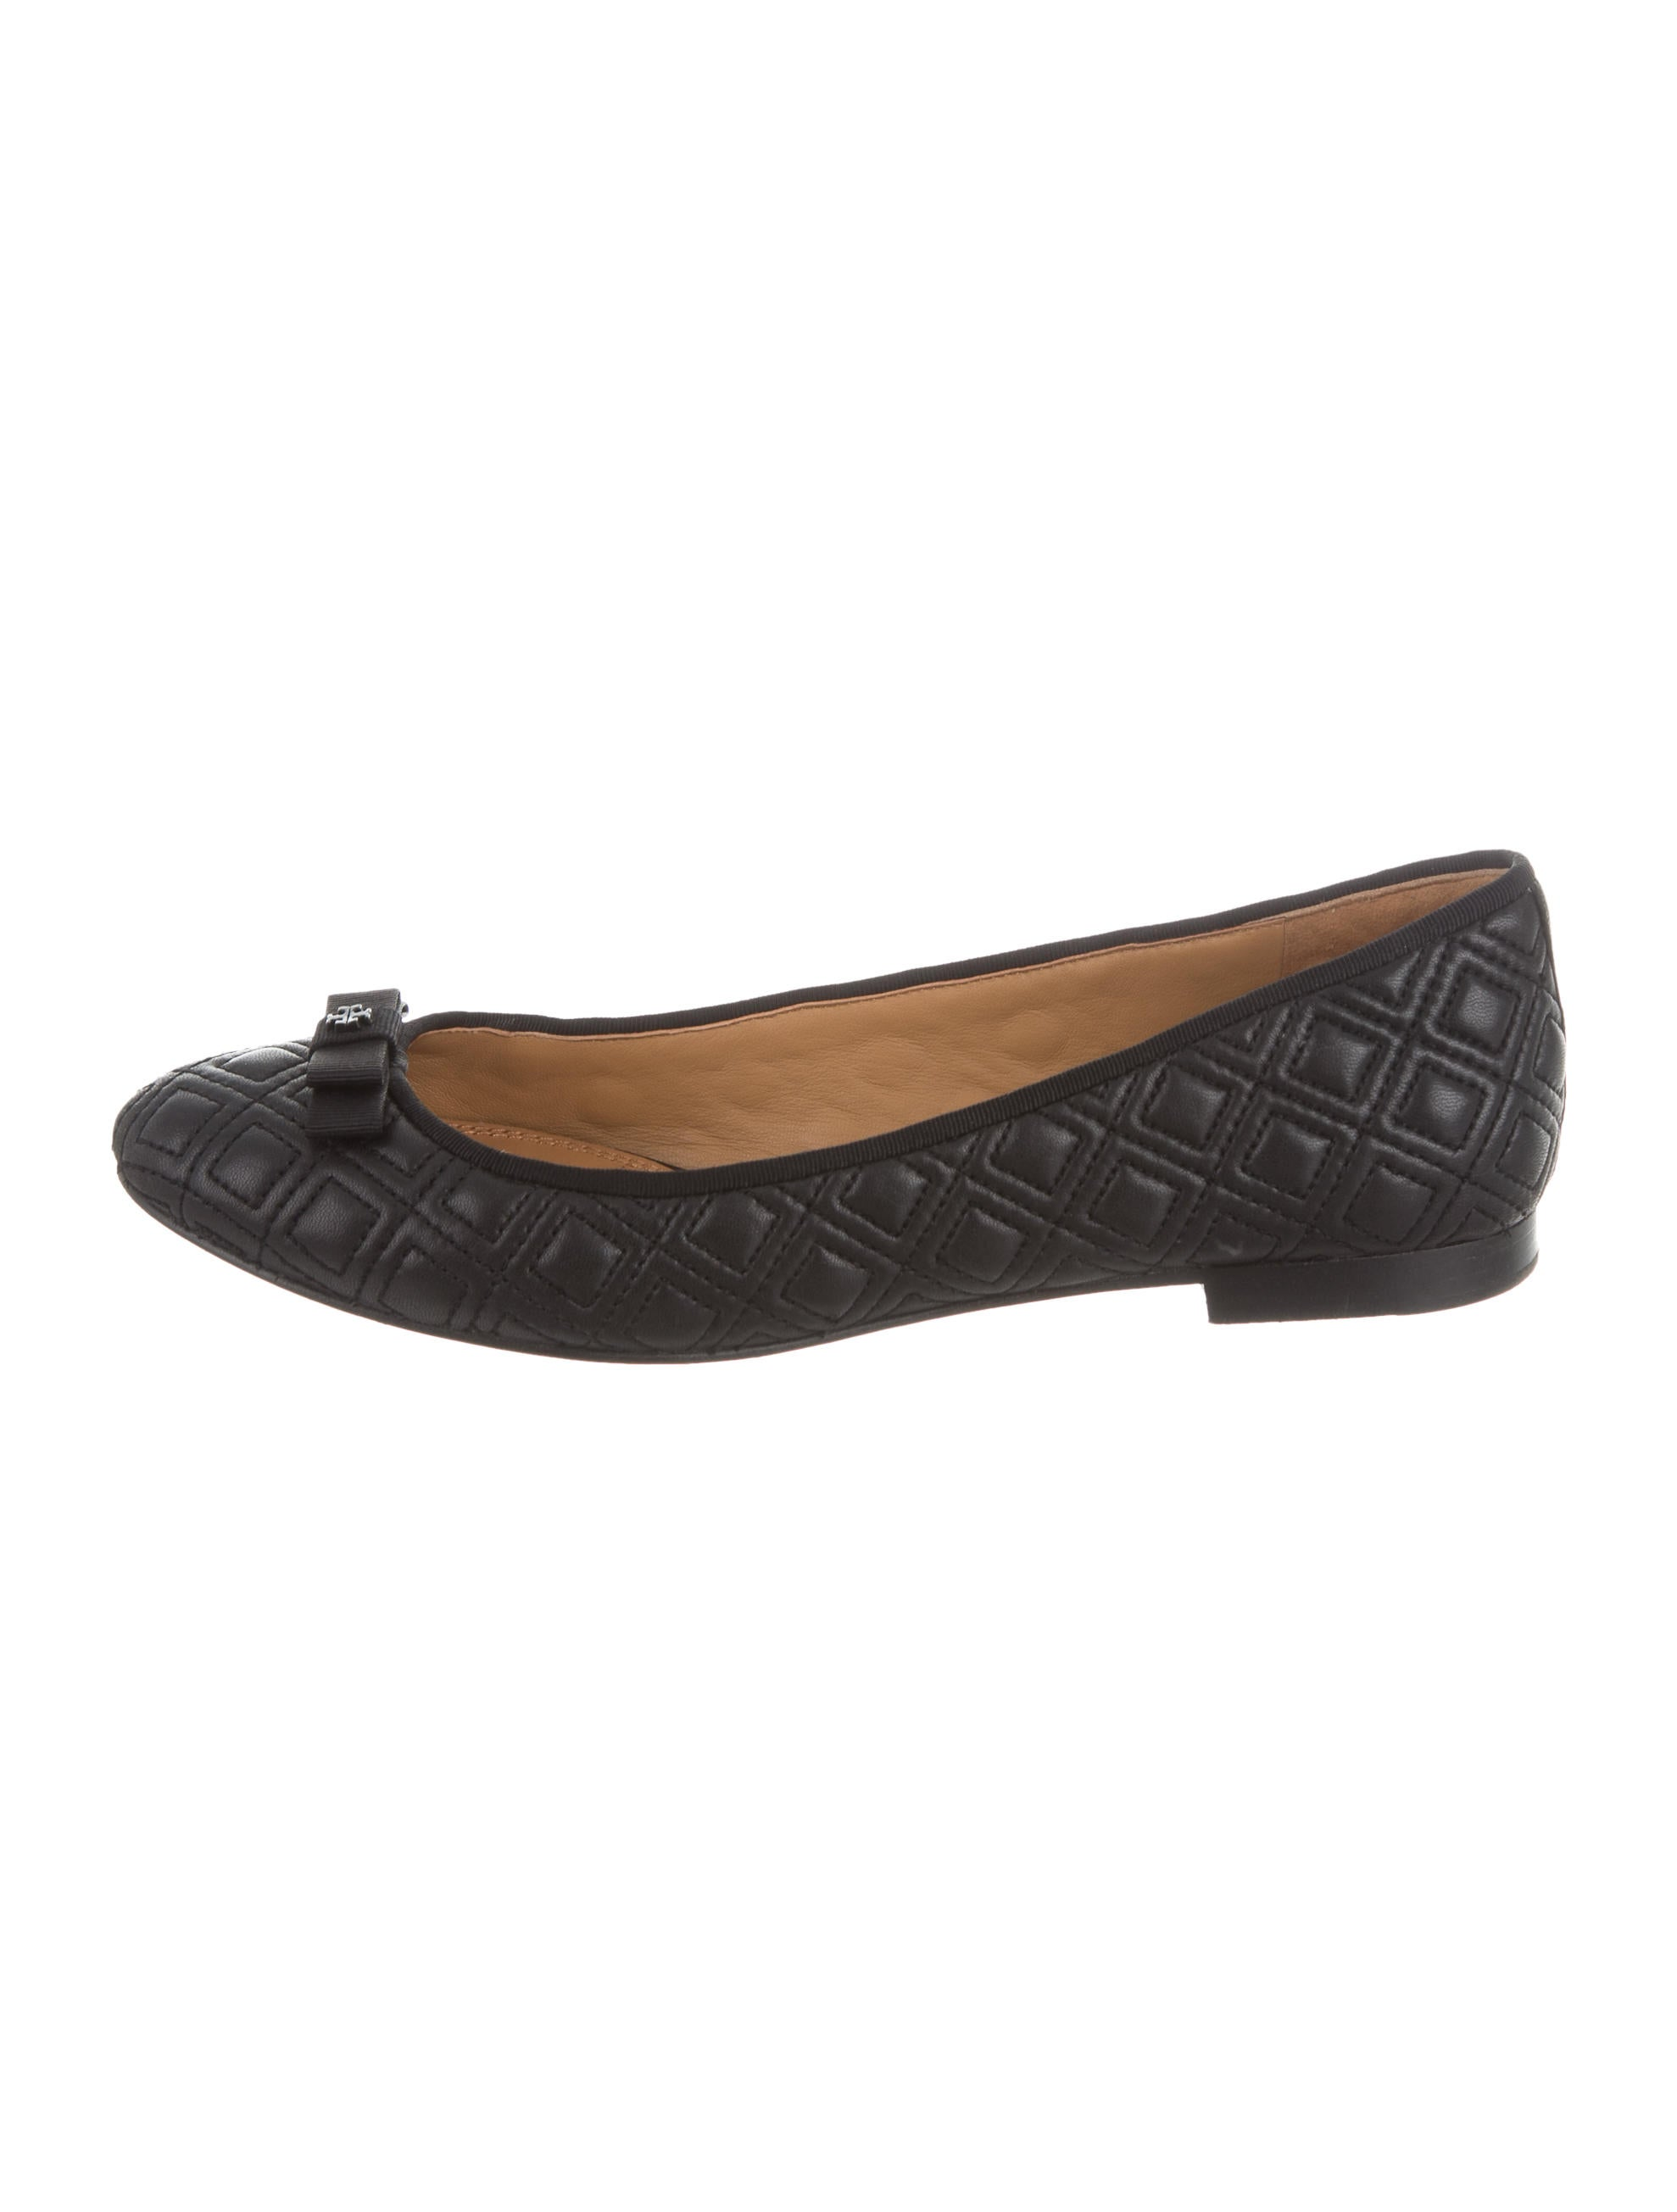 67c879aff19e9 Tory Burch Marion Quilted Ballet Flats - Shoes - WTO96050